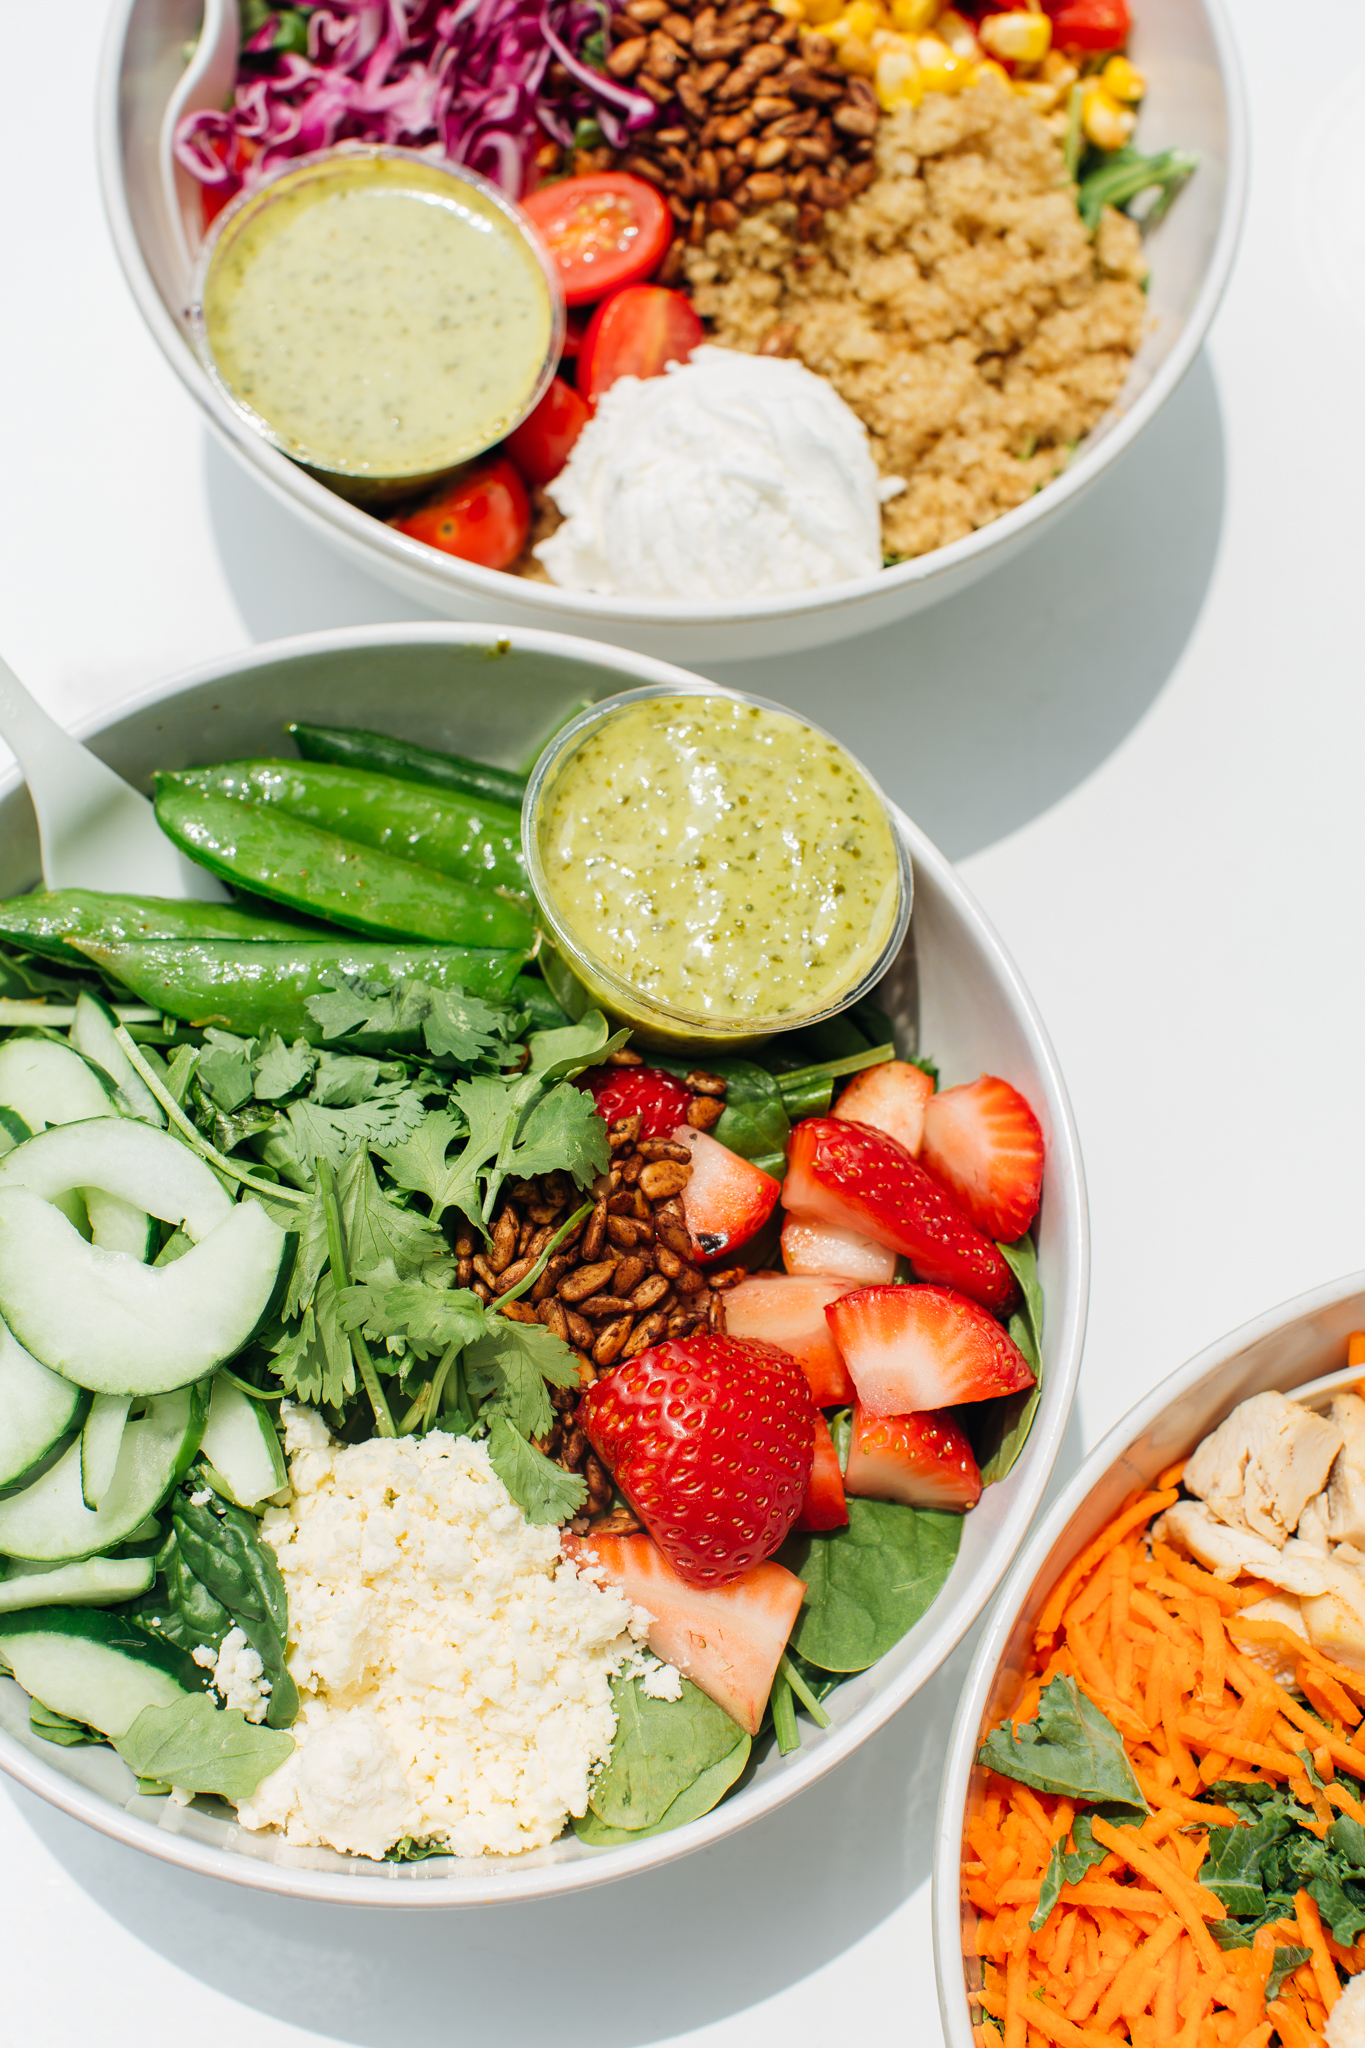 Sweetgreen strawberry and snap pea salad in Washington, D.C. on June 15, 2017.